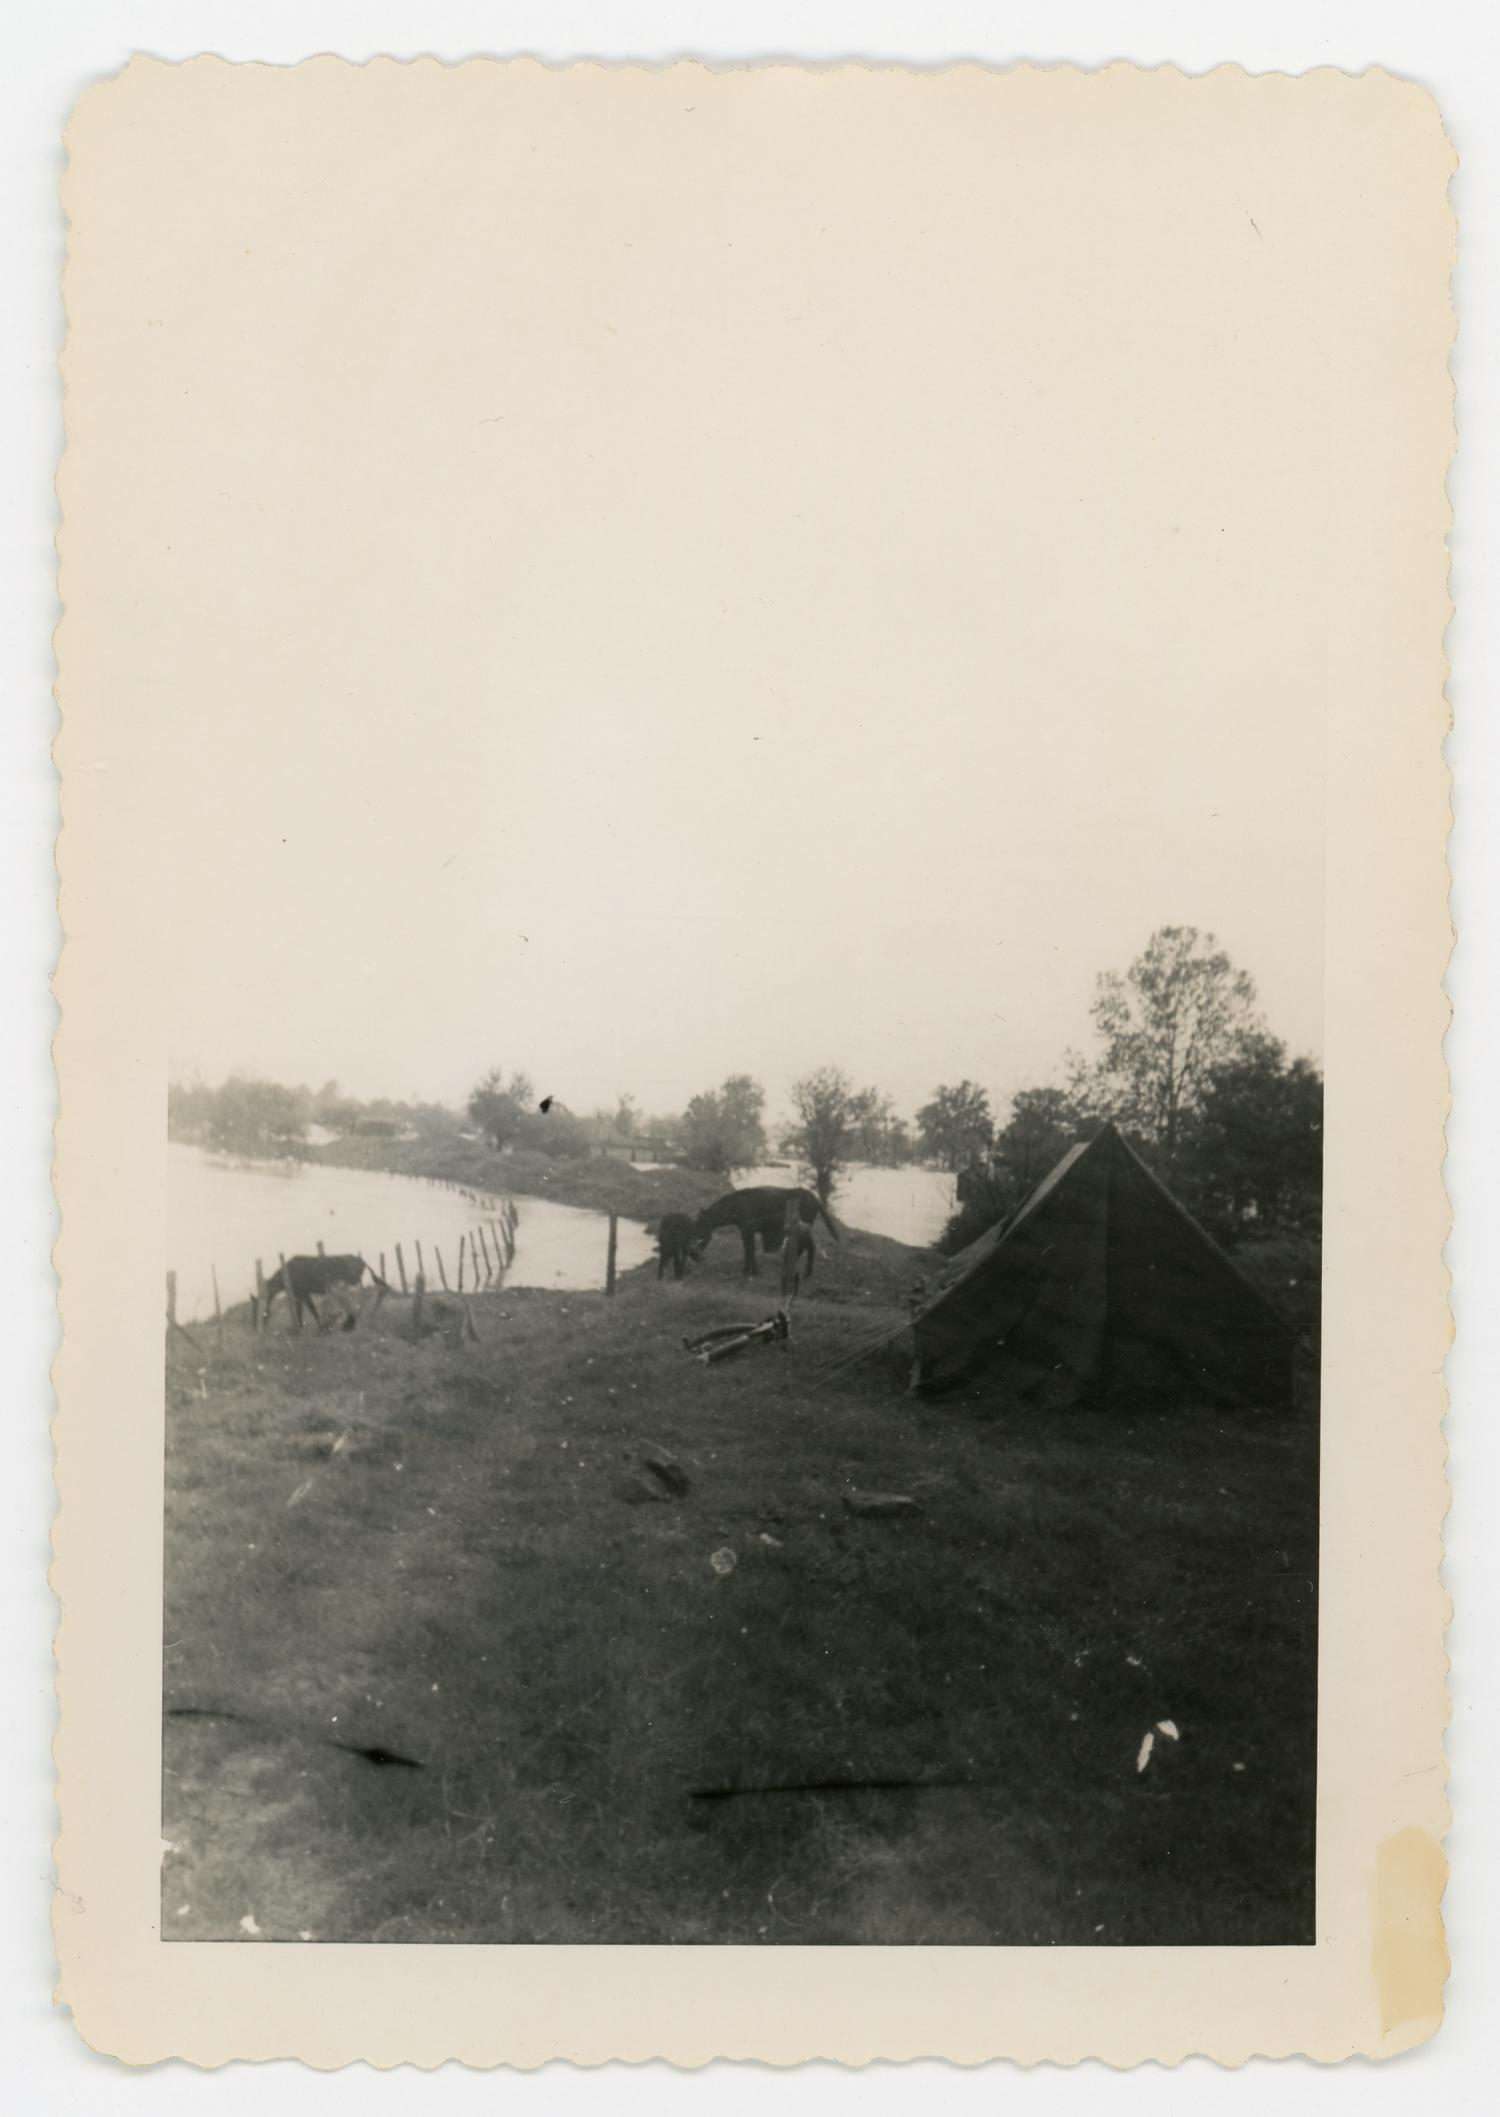 [Tent and cattle], Photograph of cattle grazing around an unidentified area next to a tent. On the distance, two ponds and some foliage are seen.,